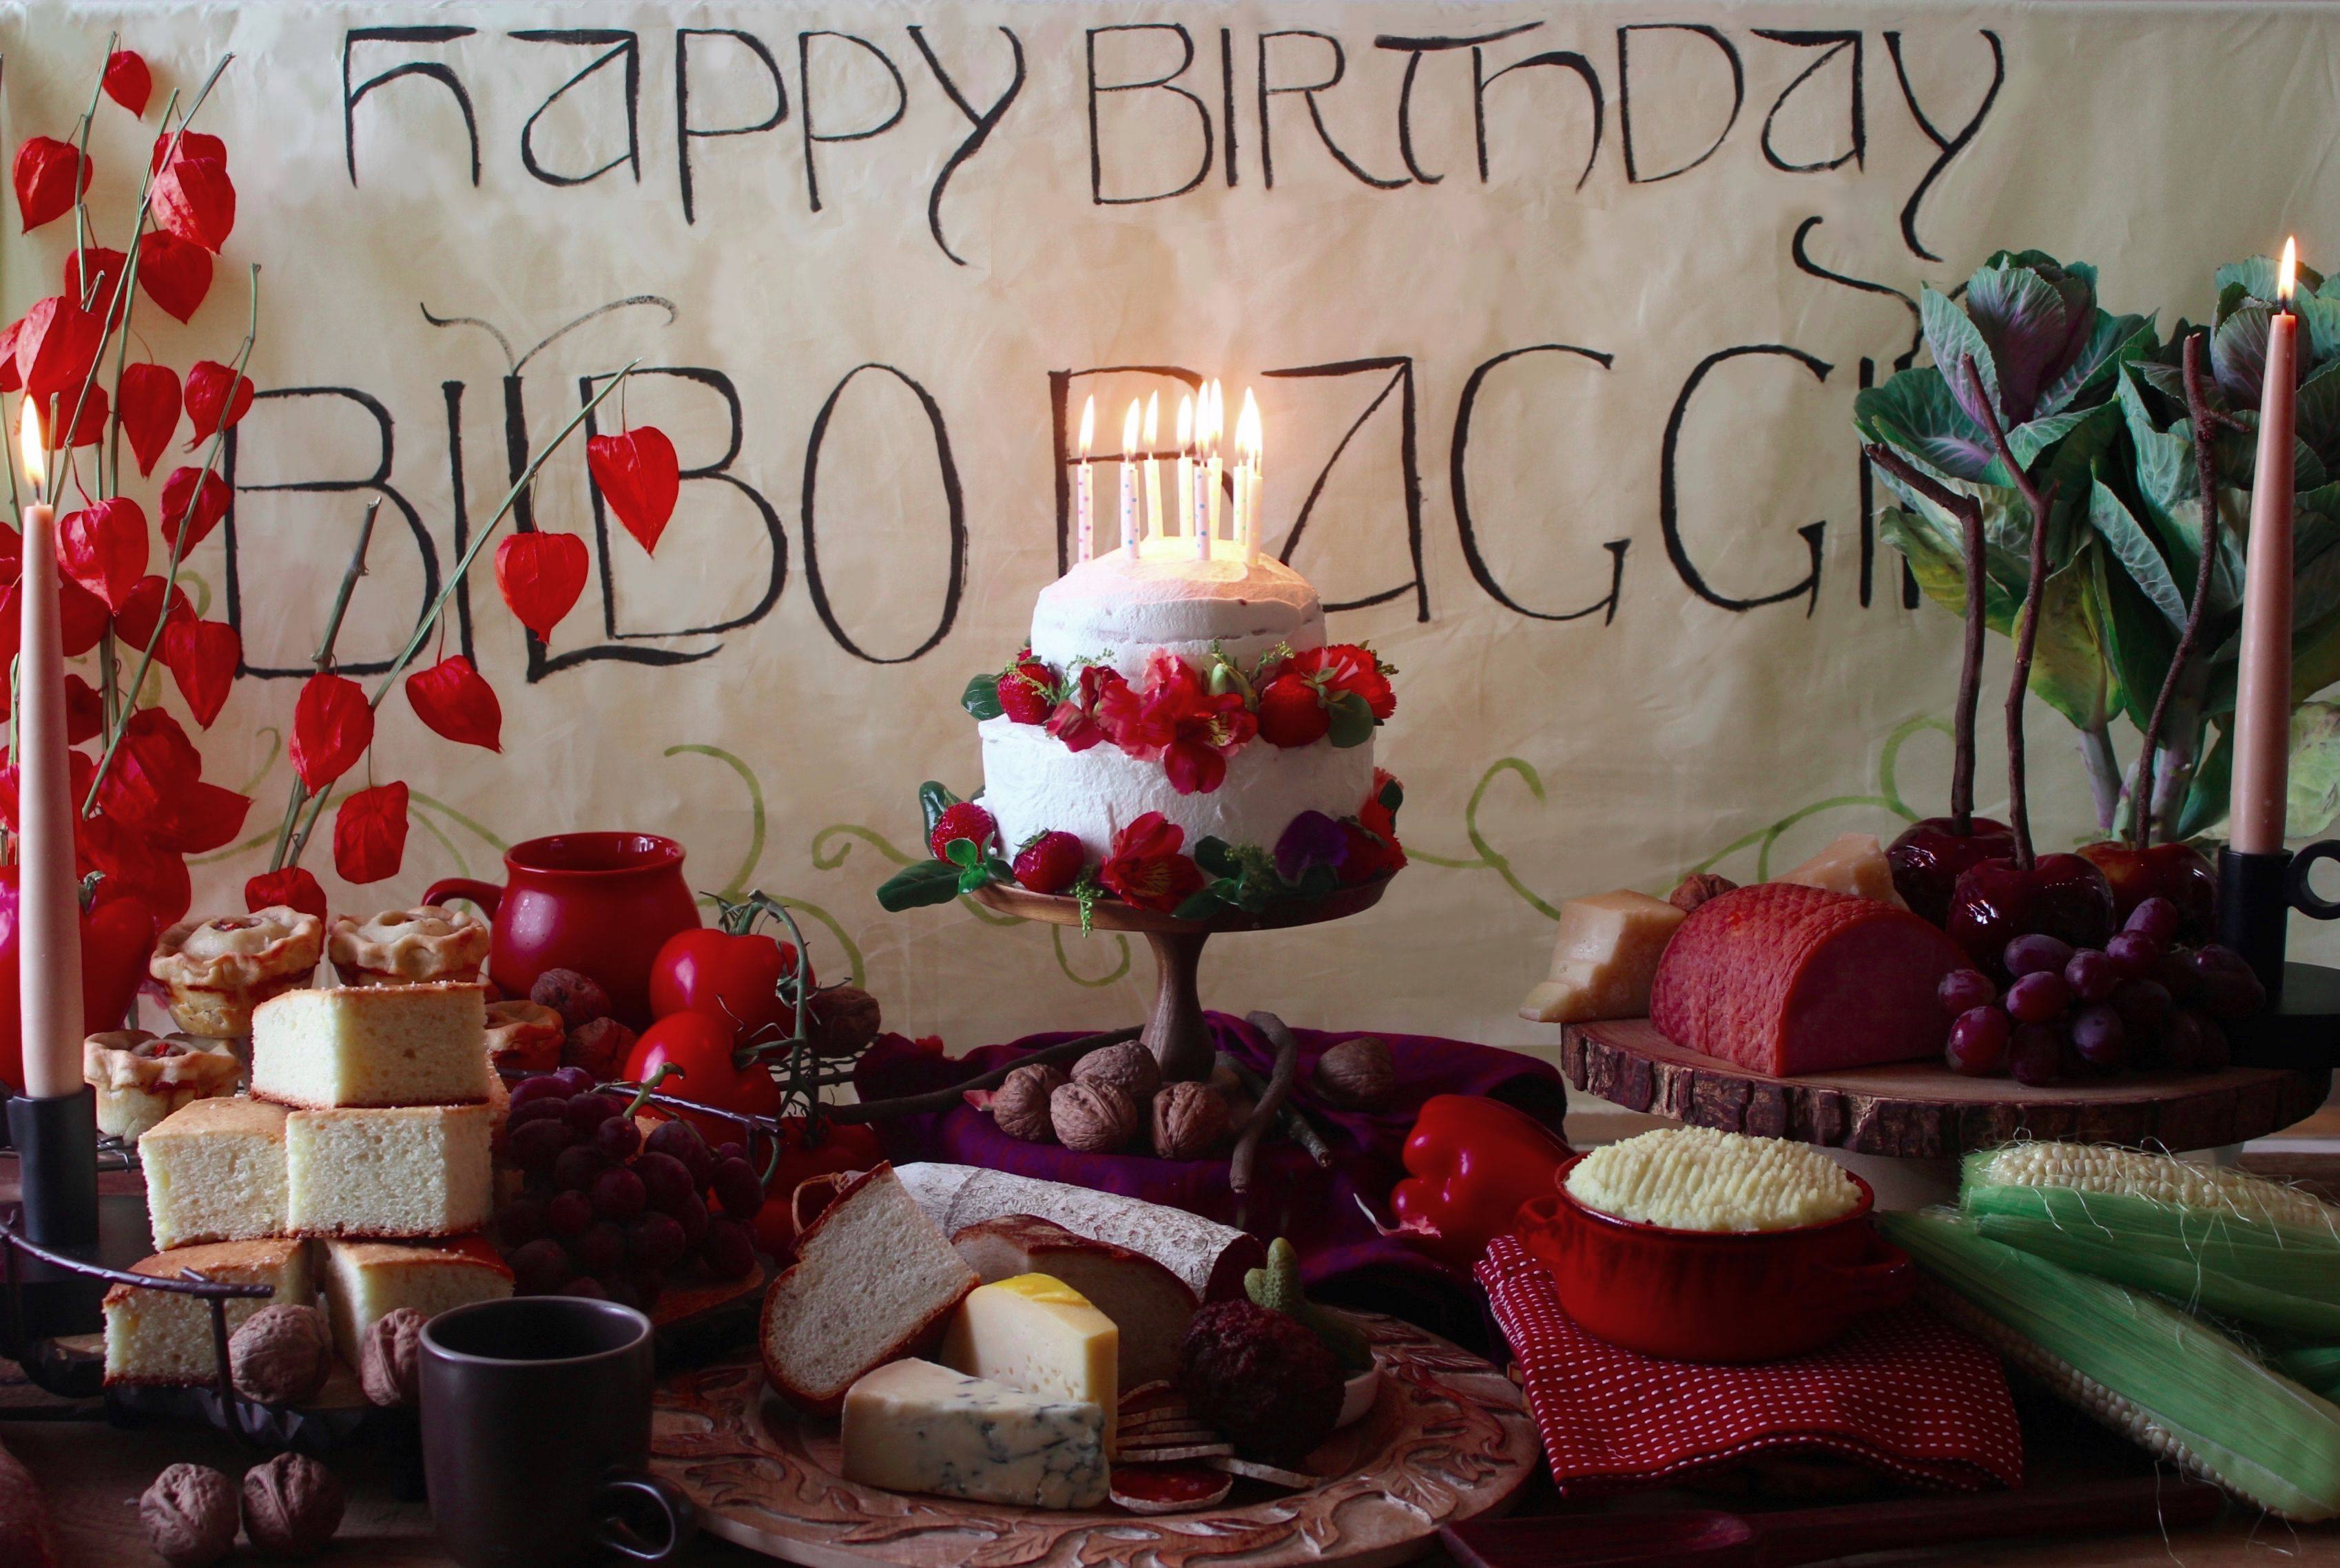 A Feast Inspired By Bilbo Baggins 111th Birthday From The Lord Of